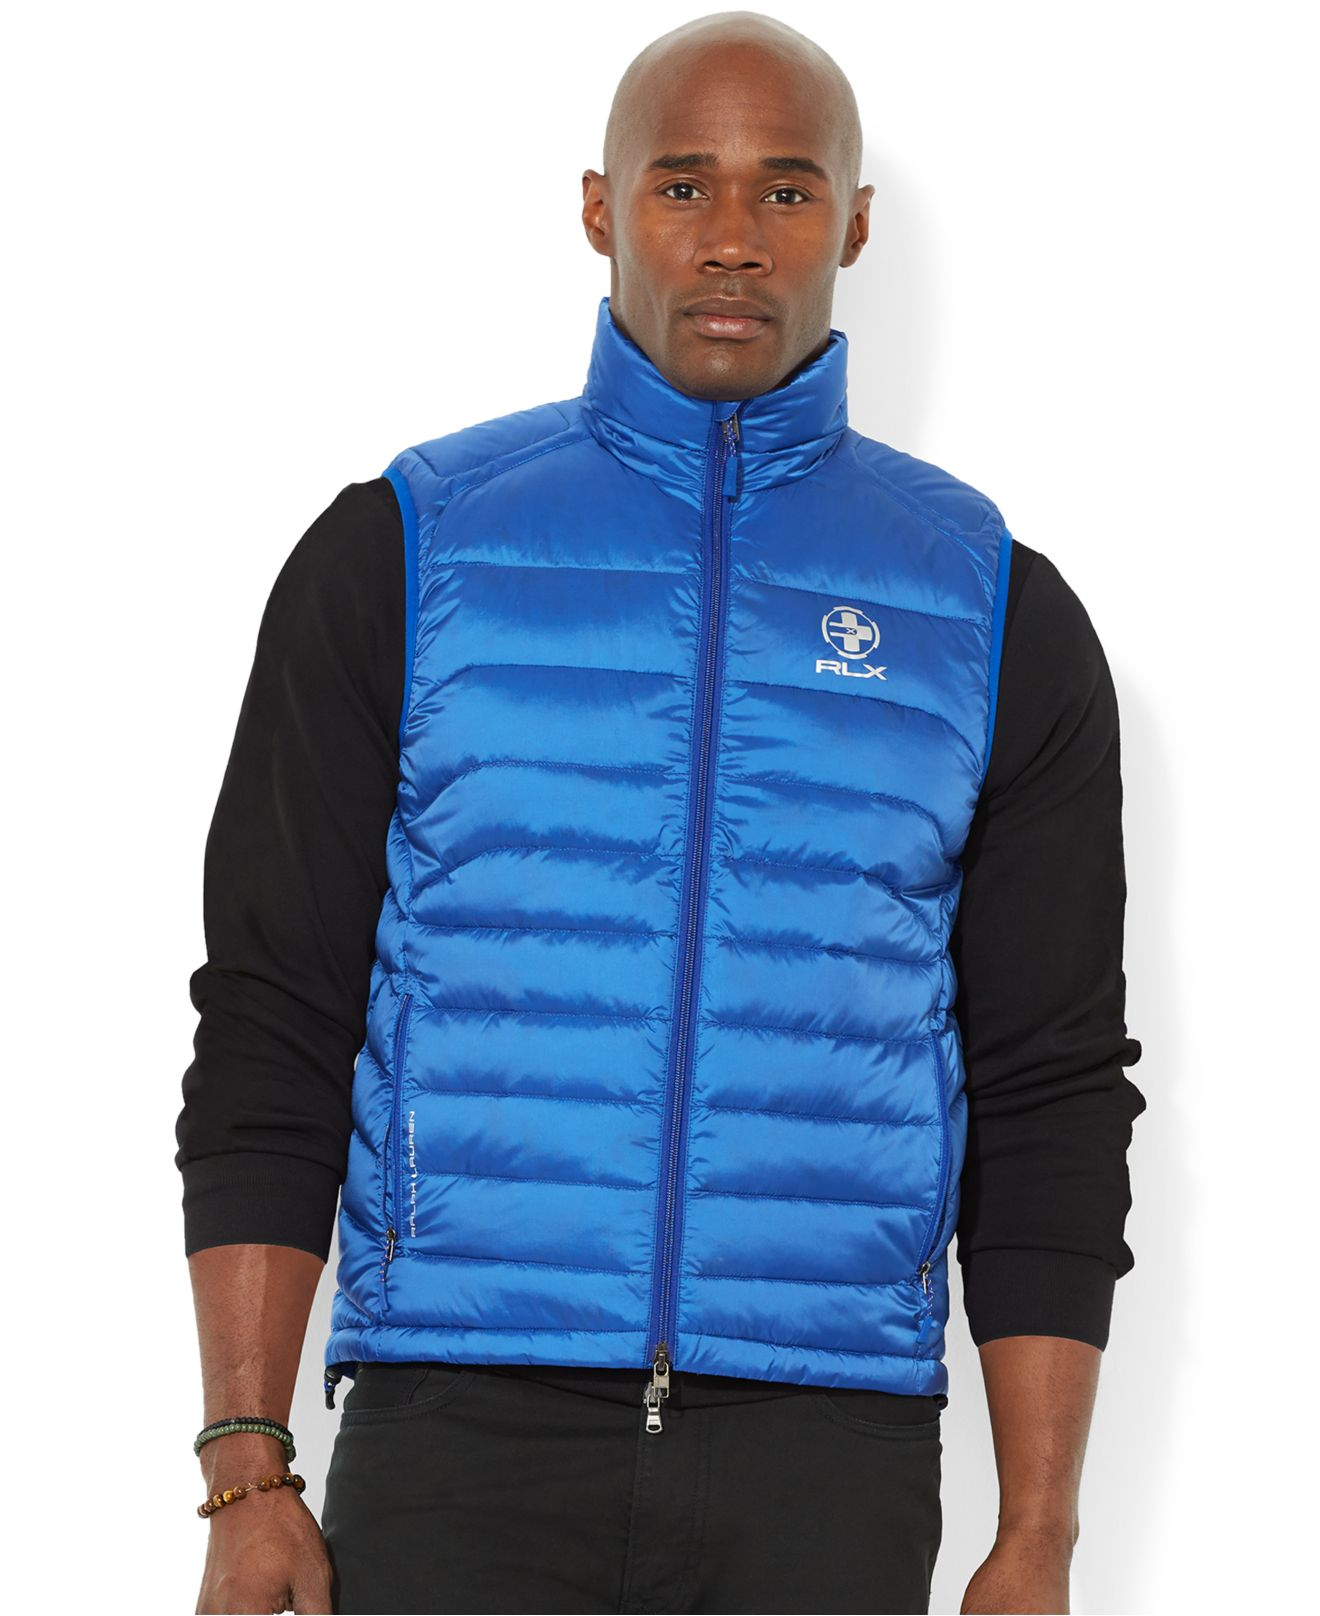 Lyst - Polo Ralph Lauren Big And Tall Rlx Packable ...